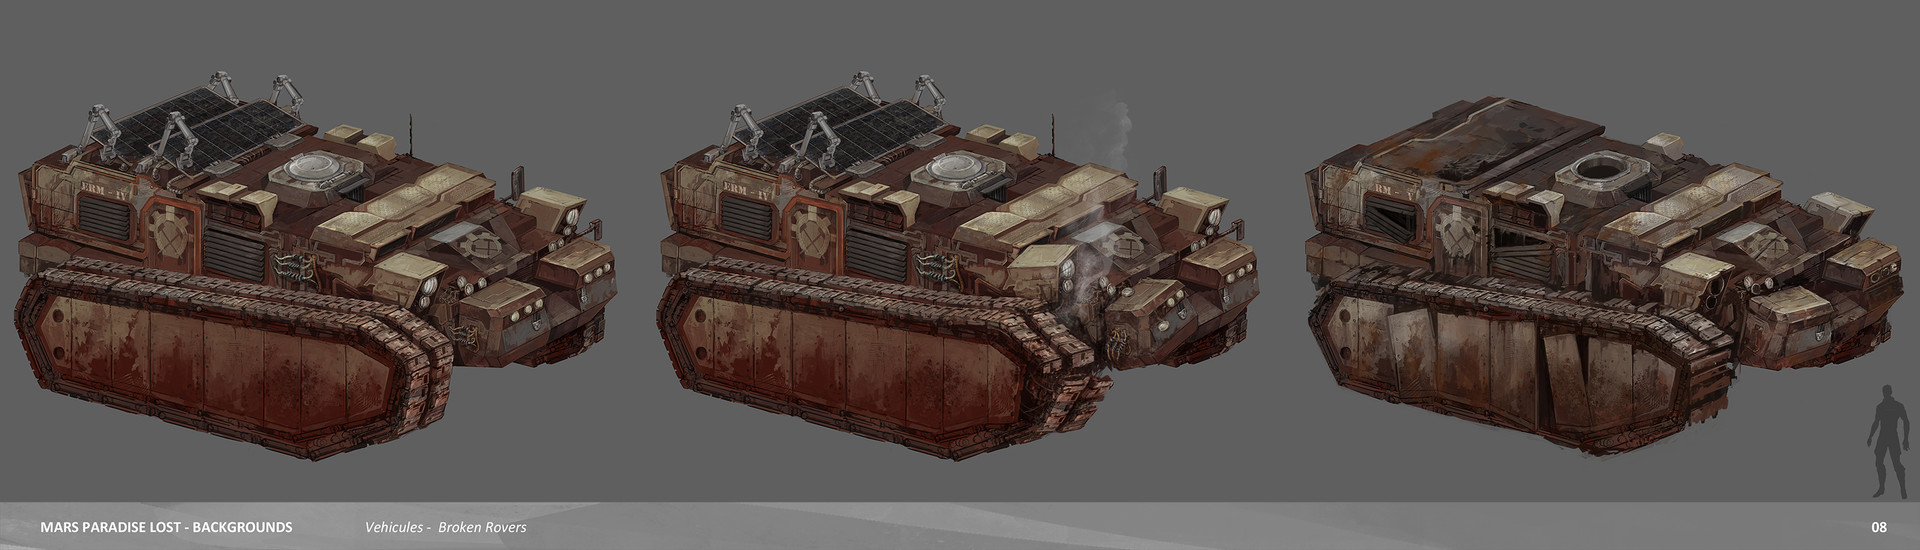 Alexandre chaudret mpl backgrounds vehicules rover08